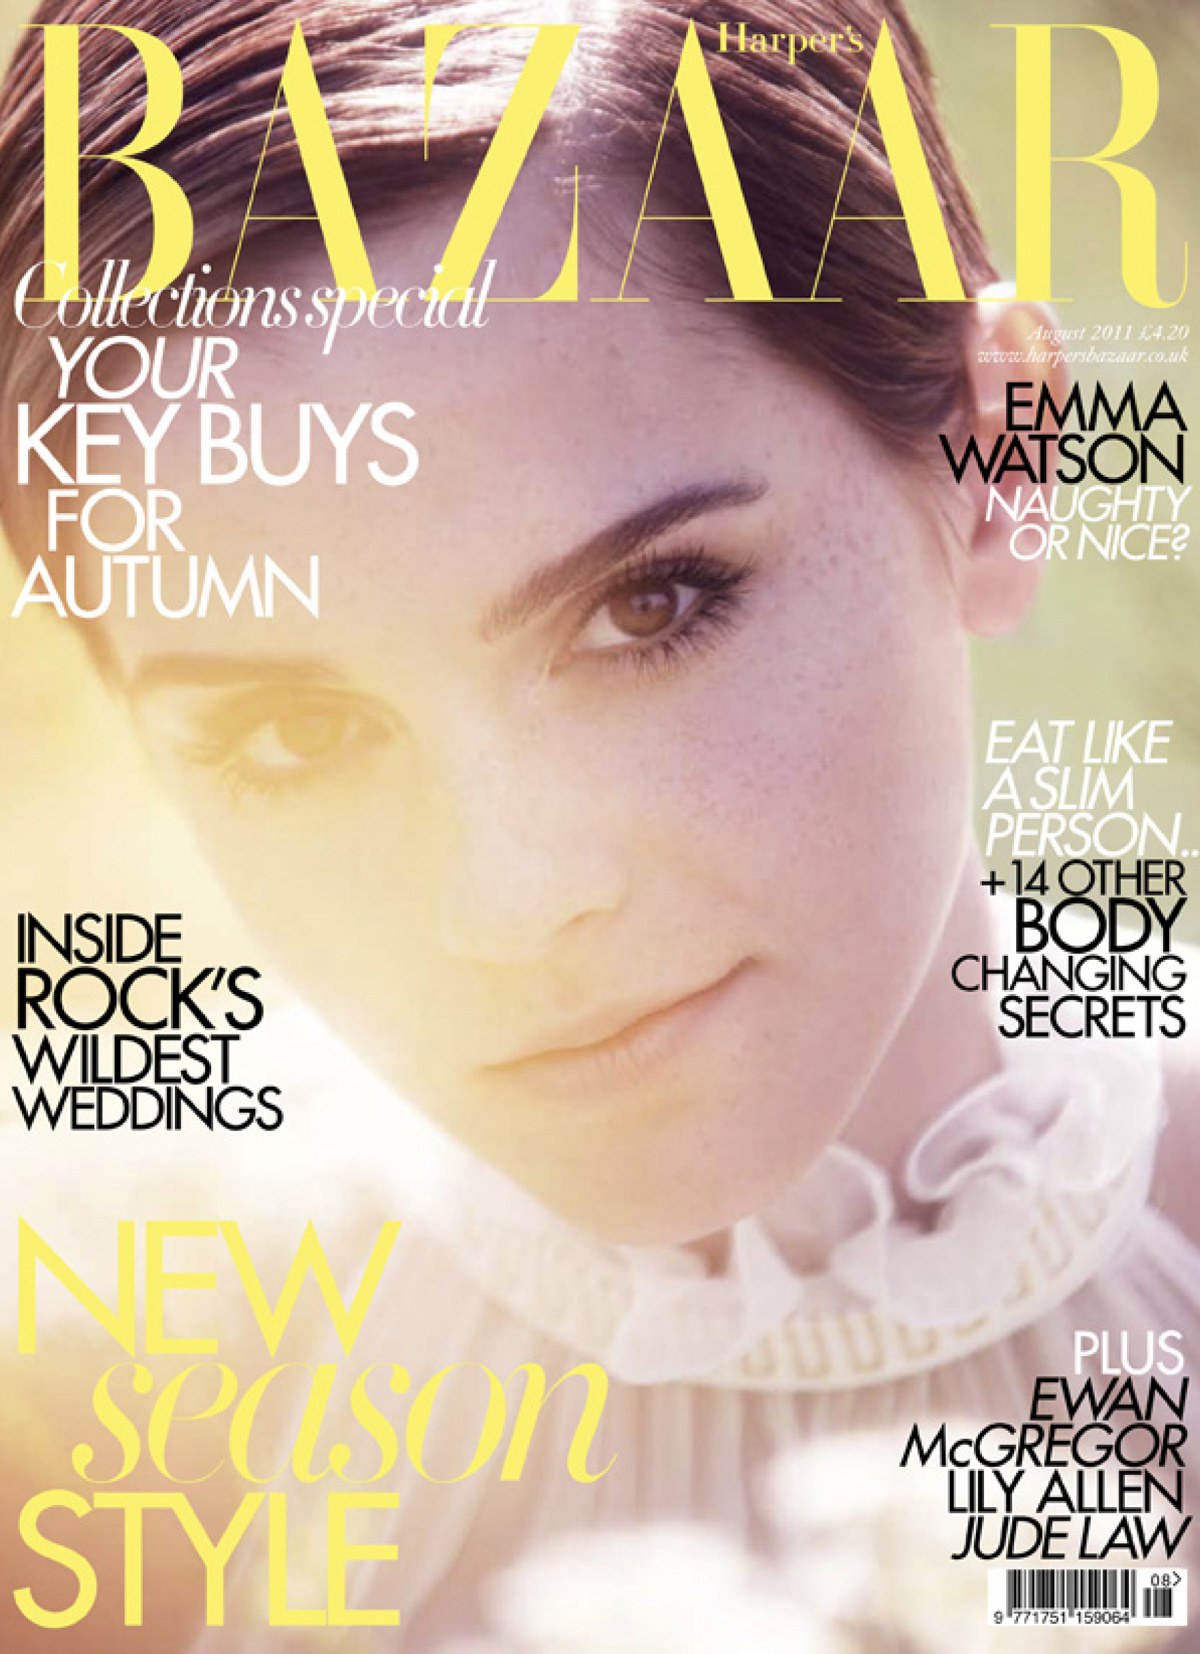 house-of-usher-harpers-bazaar-magazine-30